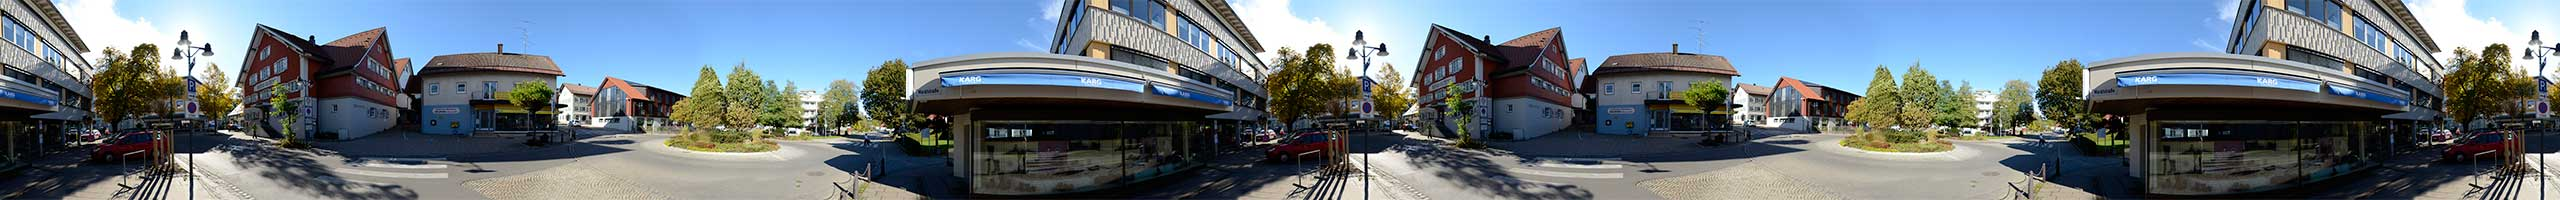 Panorama_Lindenberg_13_final_2560pix.jpg